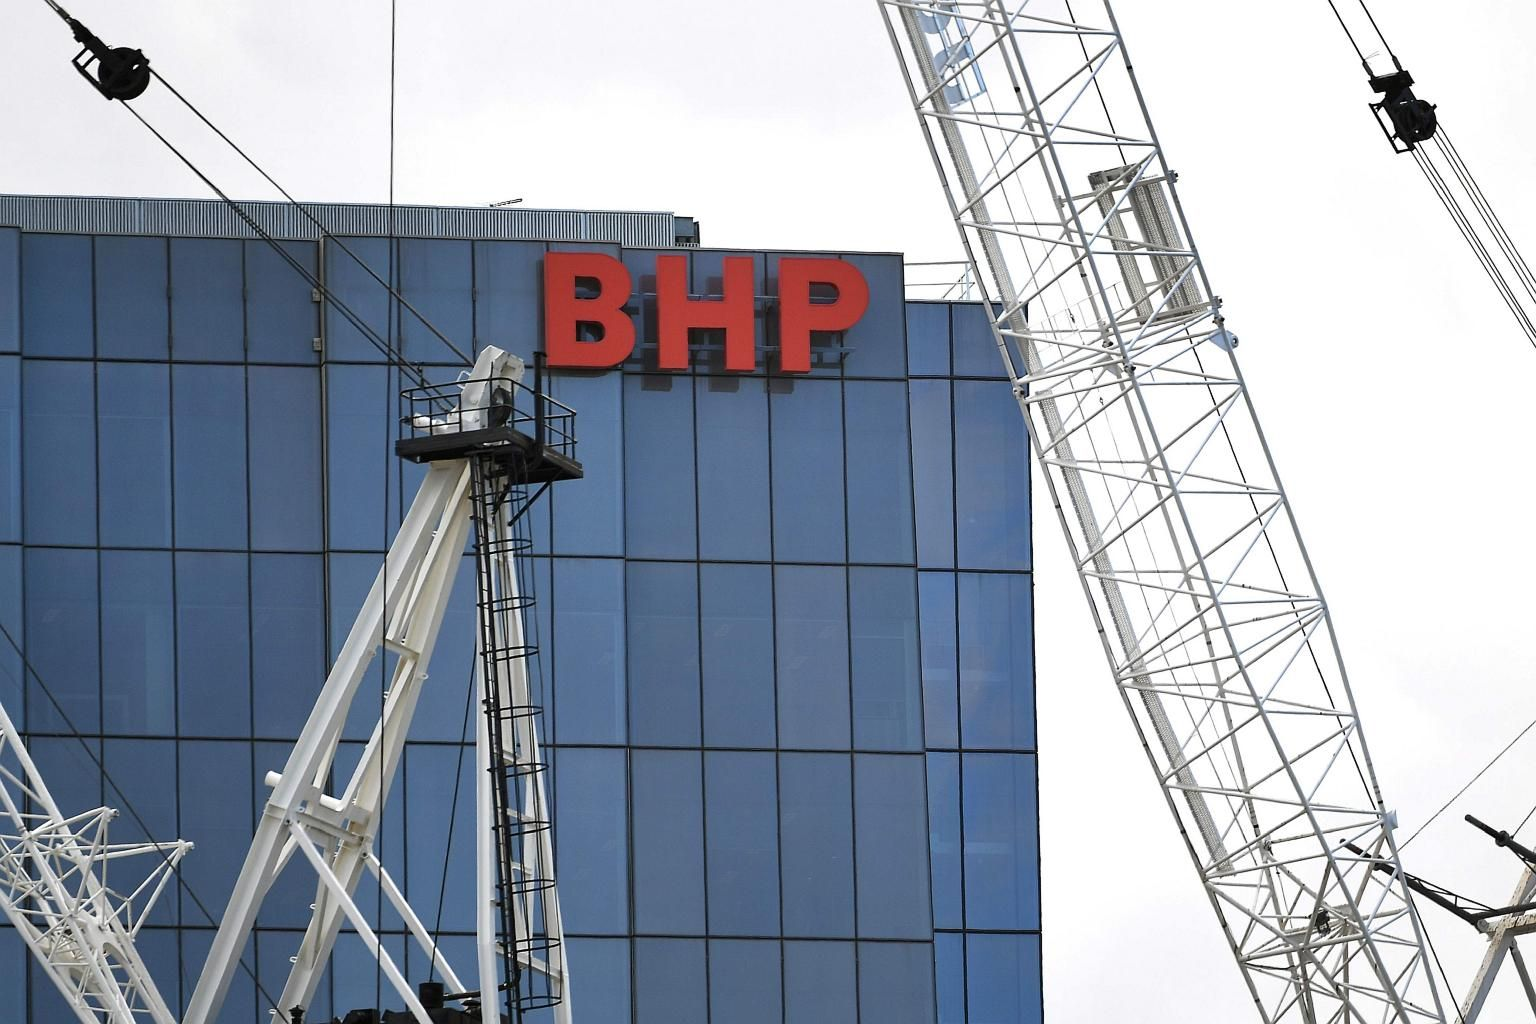 Mining giant BHP to cut more than 700 jobs including some in